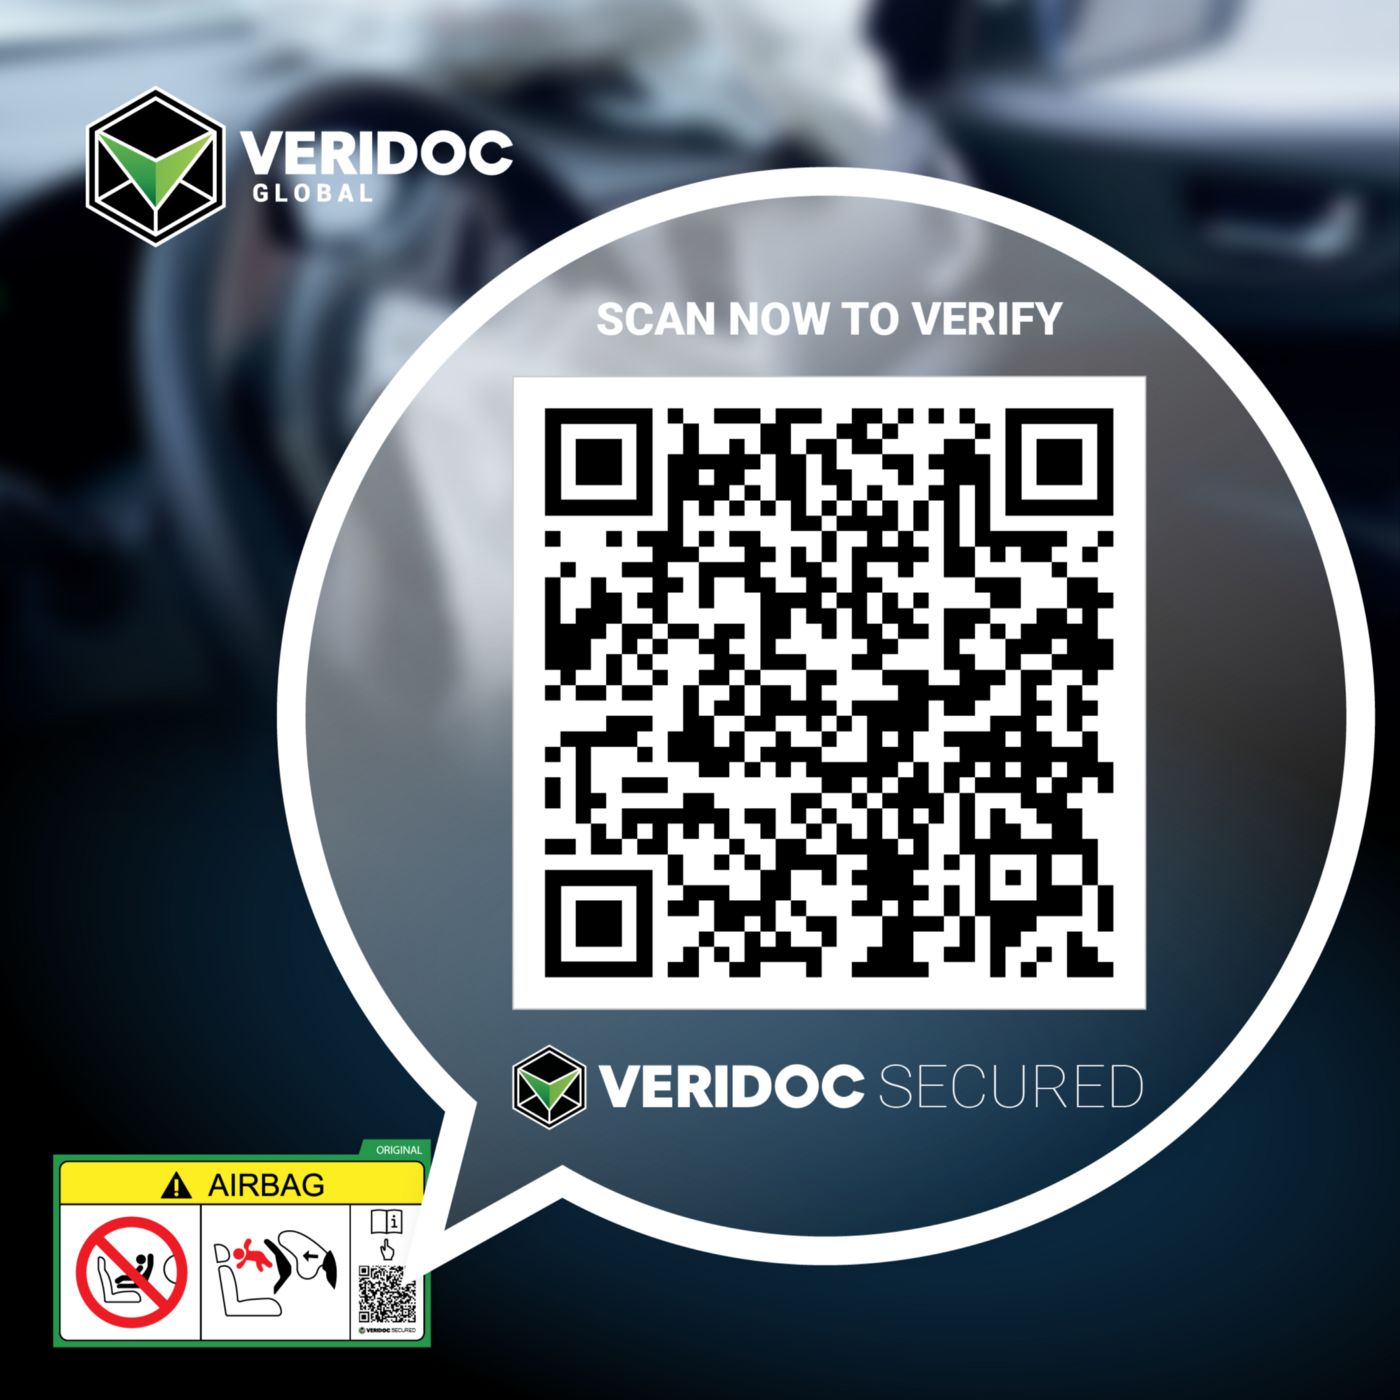 All Cars Should Come With QR Codes - VeriDoc Global - Medium